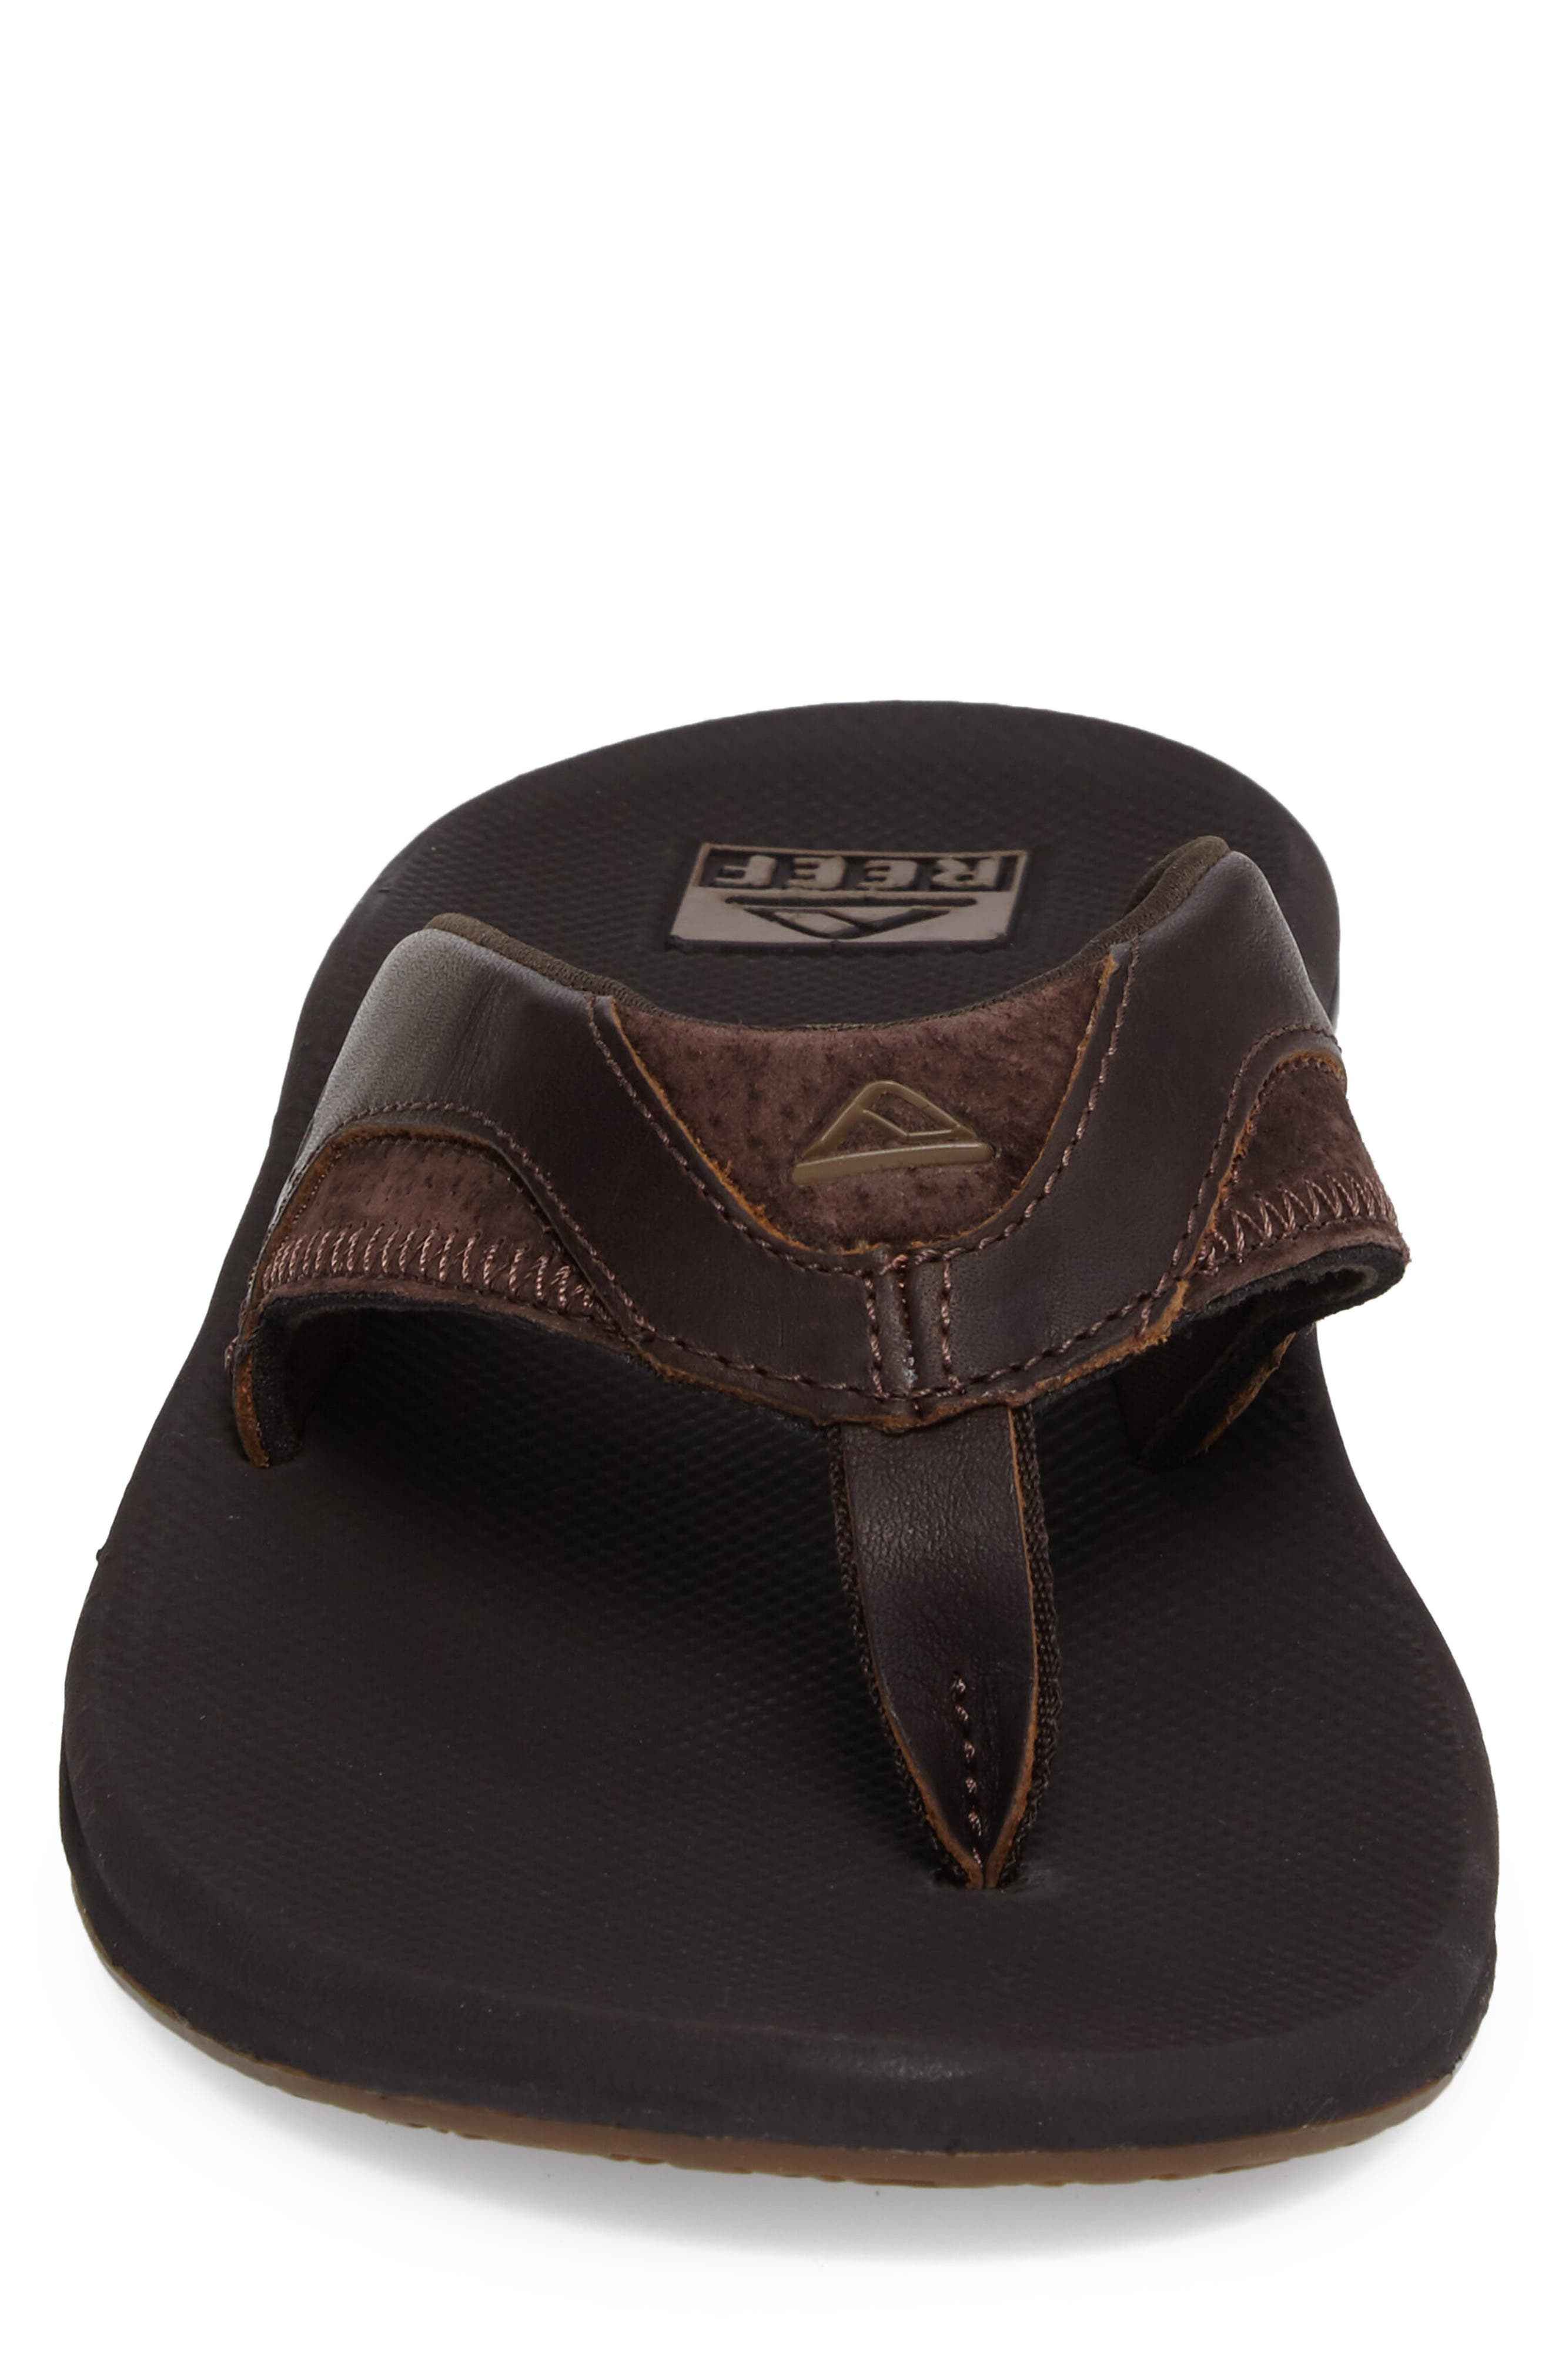 REEF, 'Fanning Leather' Flip Flop, Alternate thumbnail 4, color, BROWN LEATHER